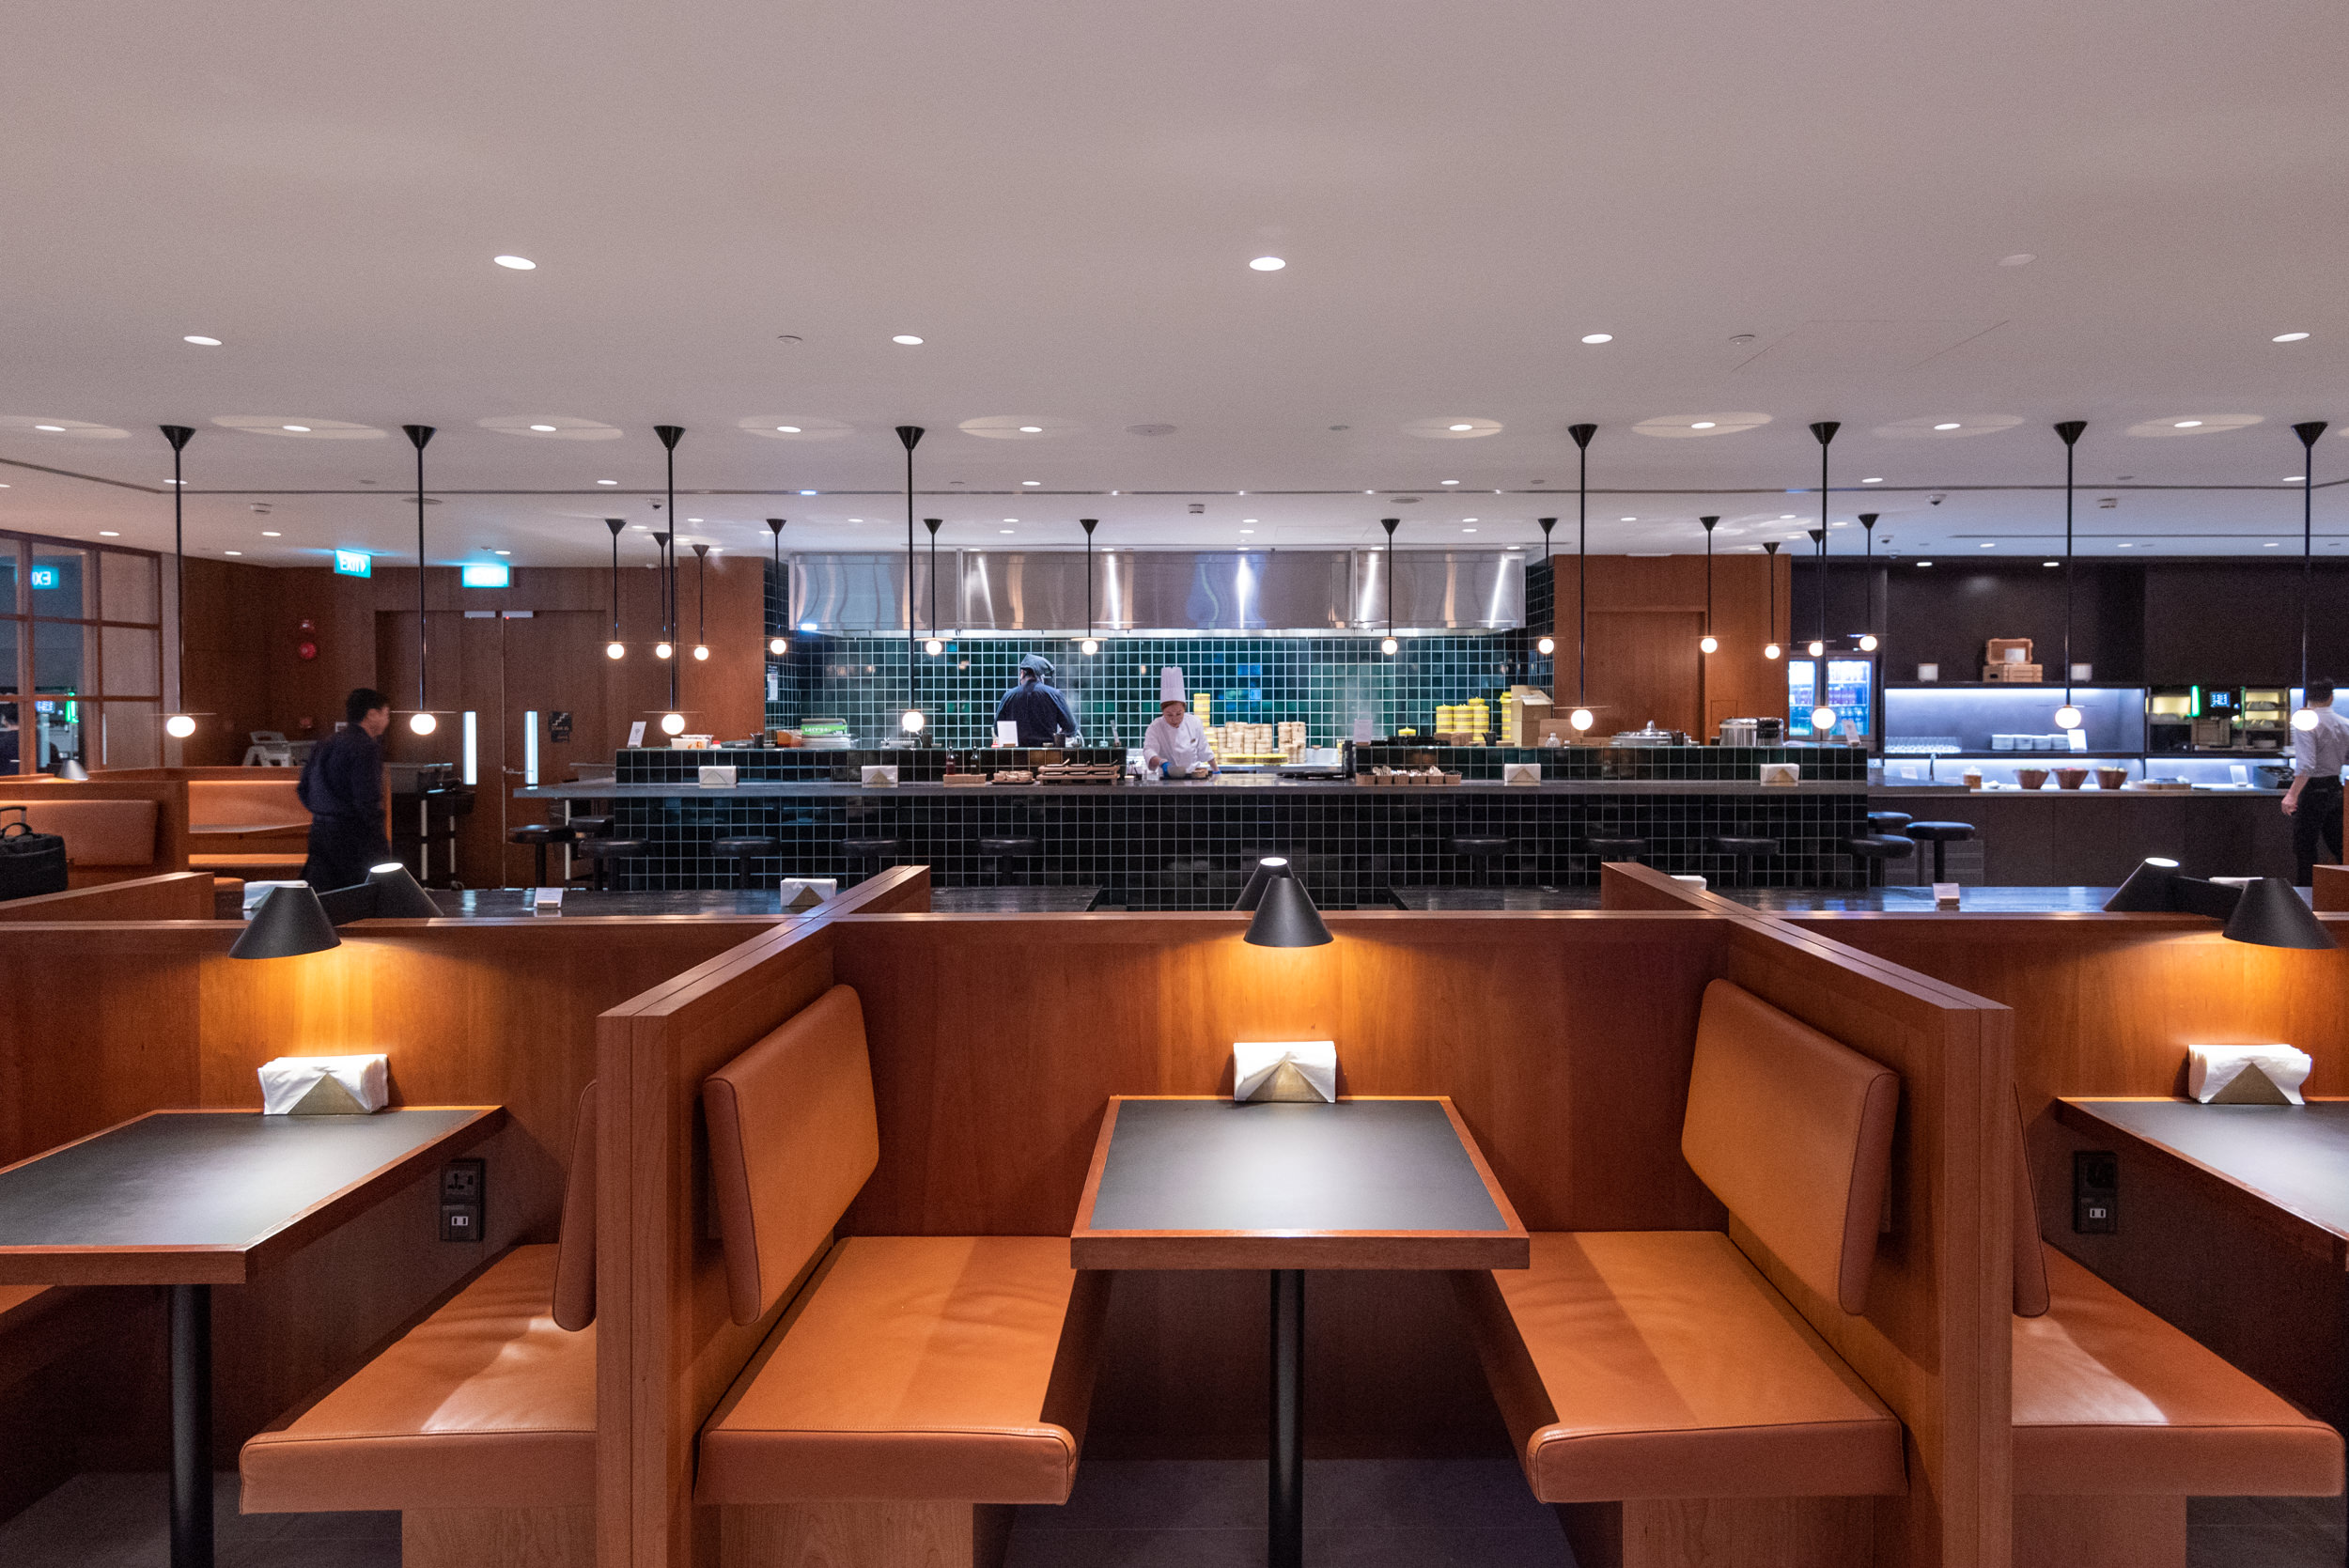 The Noodle Bar  Cathay Pacific Lounge (Terminal 4) - Singapore Changi Airport (SIN)